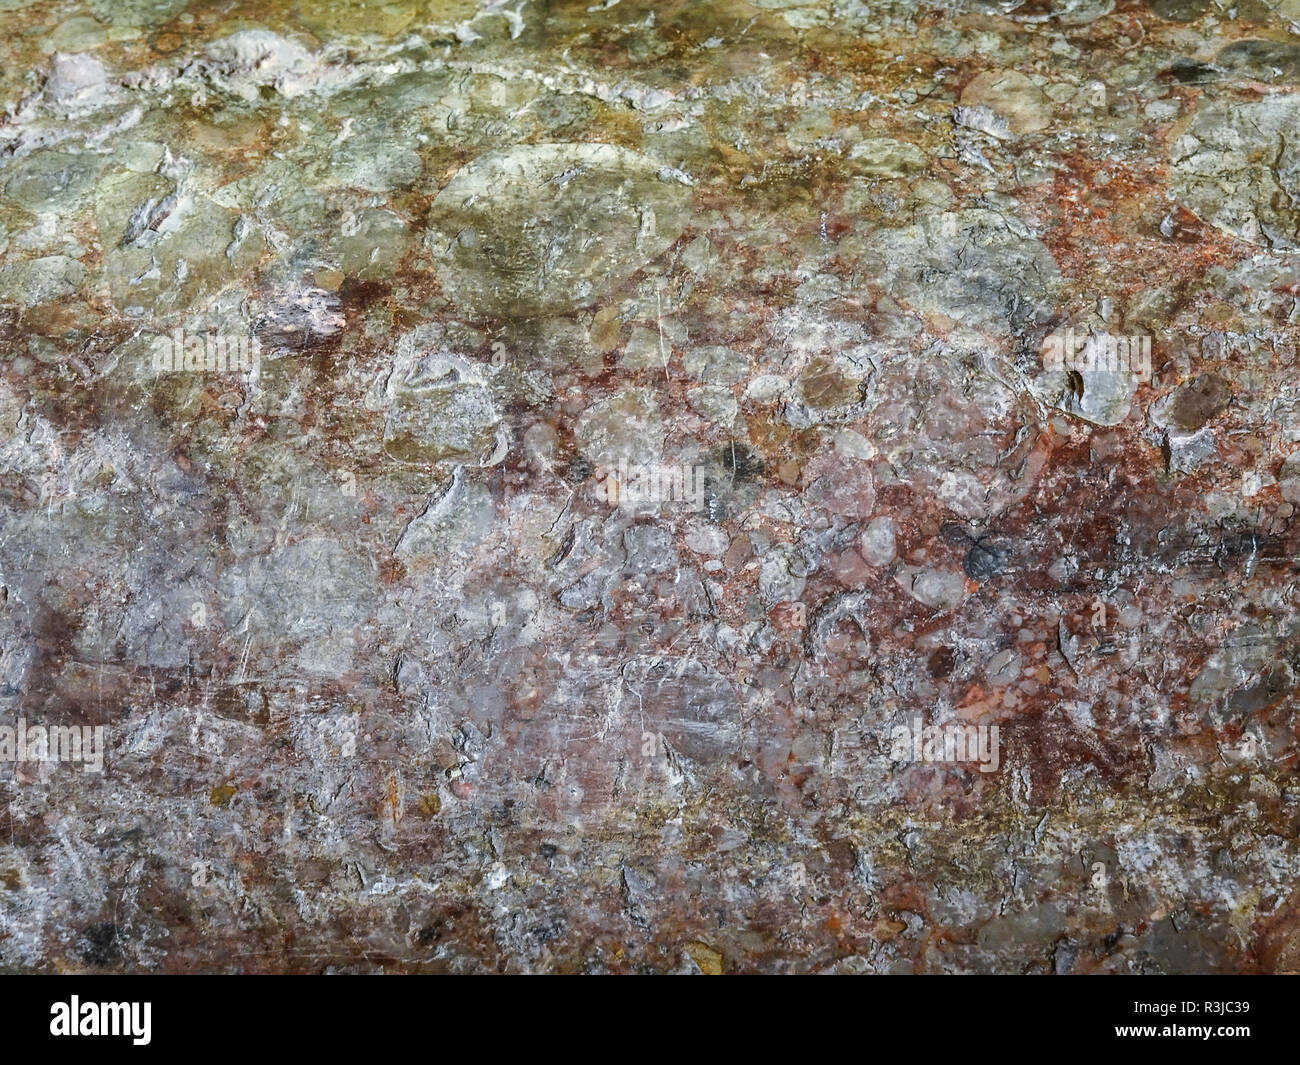 Natural Stone texture, wall marble surface of old building in brown colors for design. - Stock Image